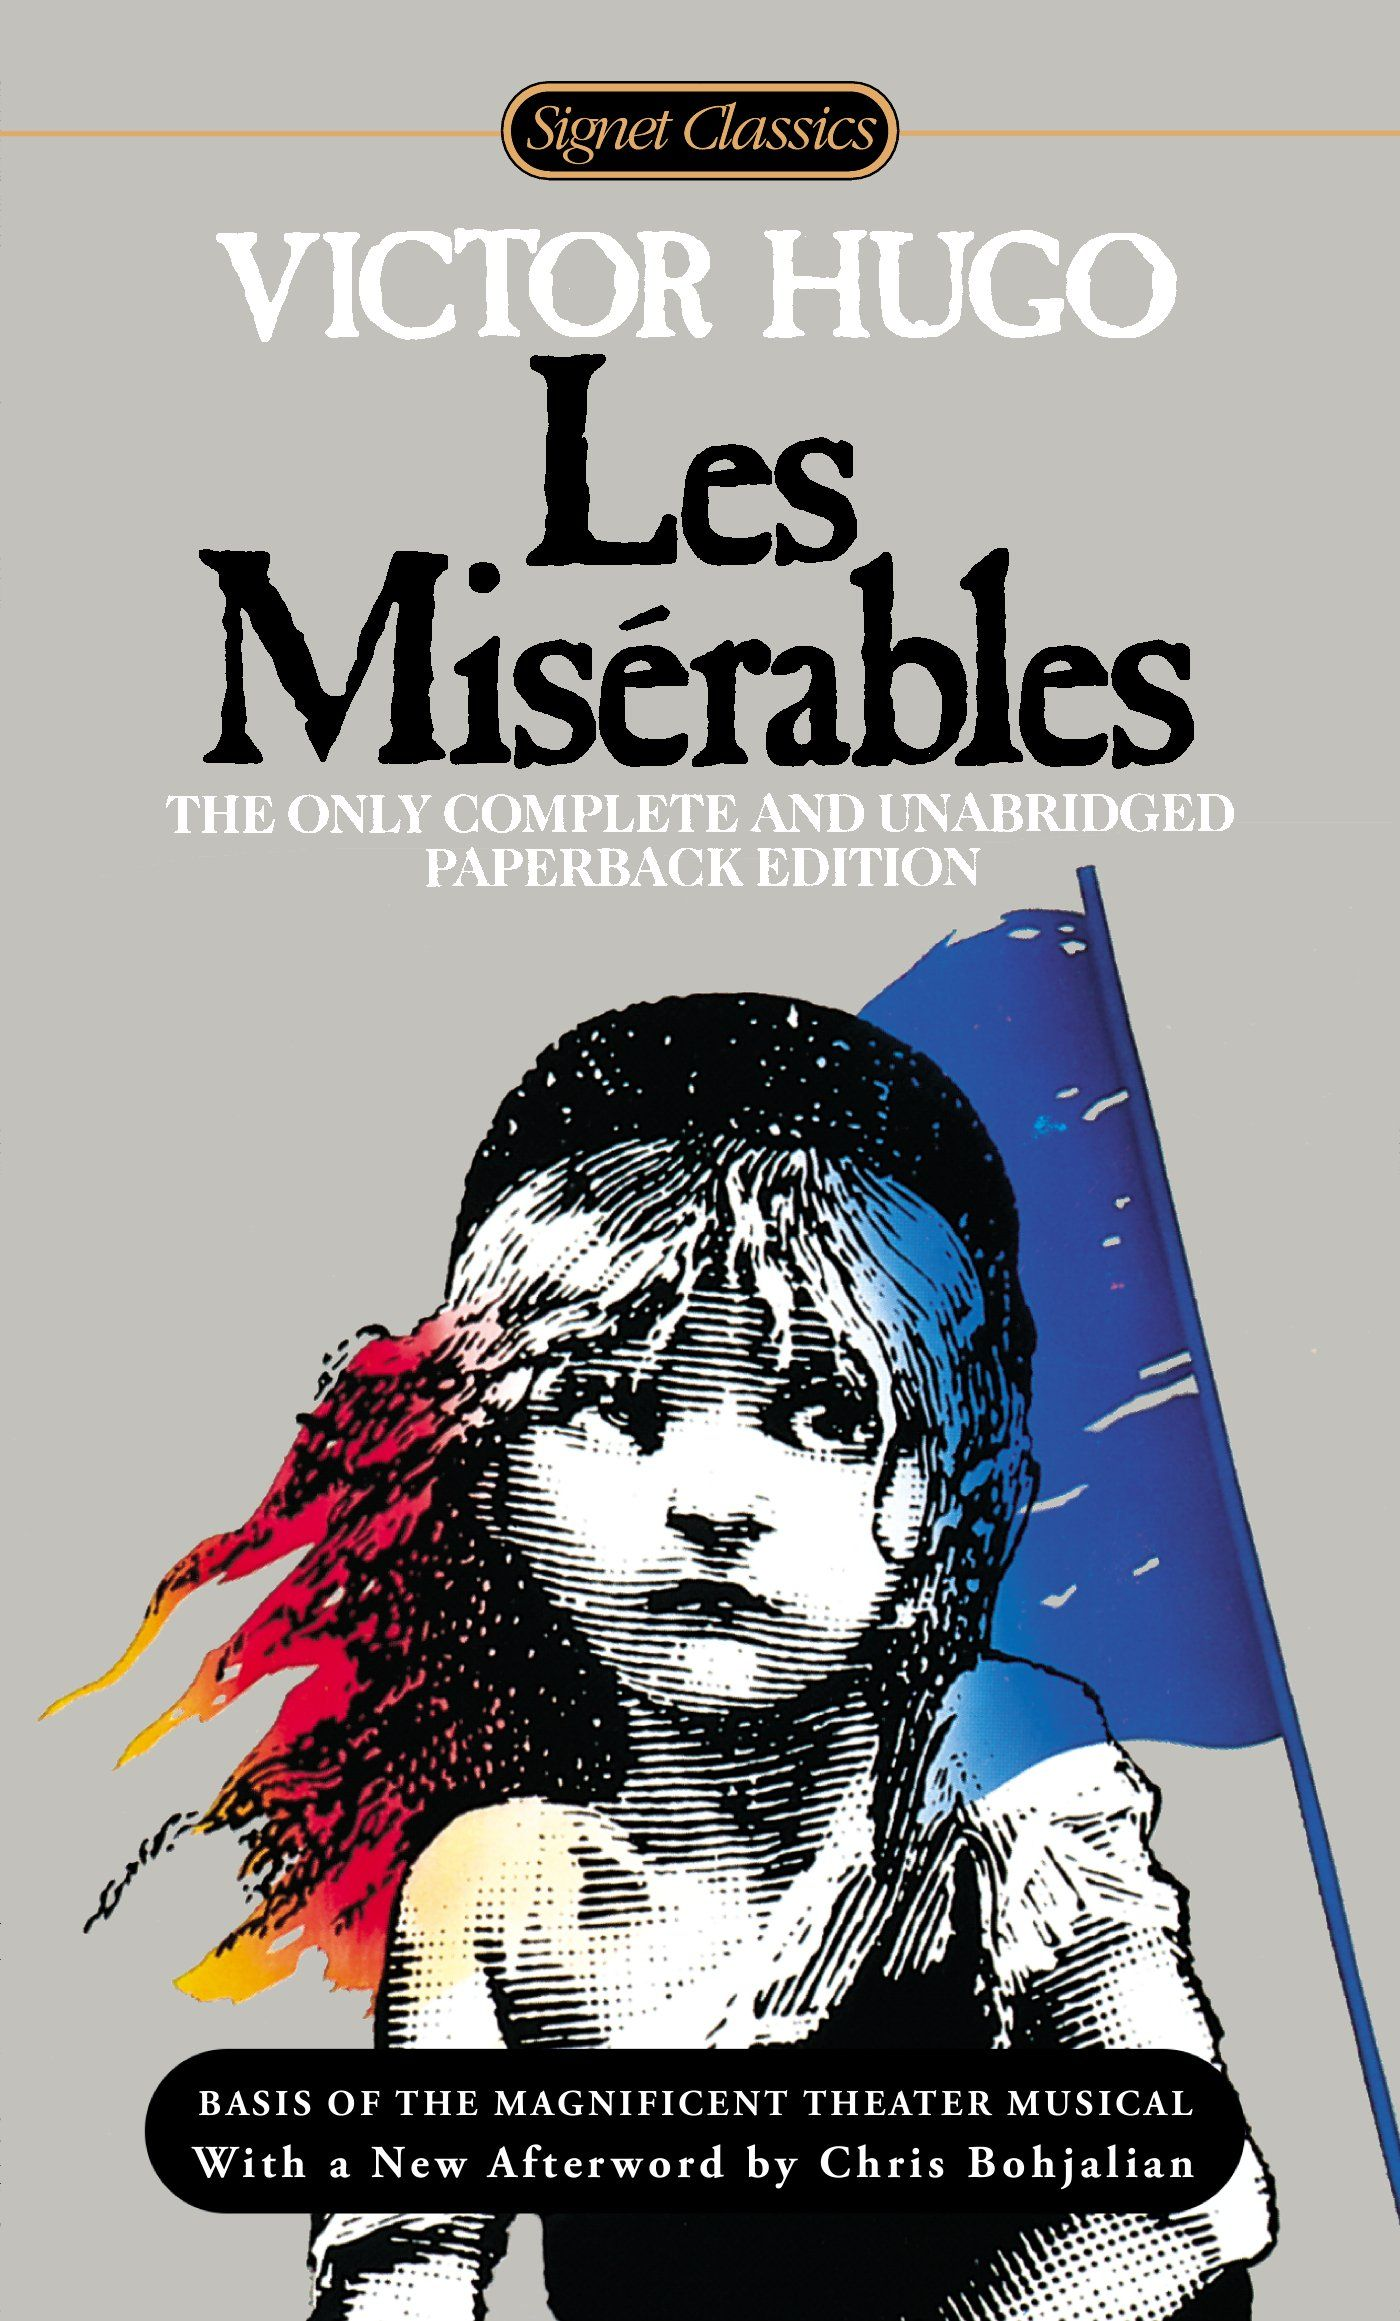 Mis Hogos Les Miserables Victor Hugo One Of The Most Widely Read Novels Of